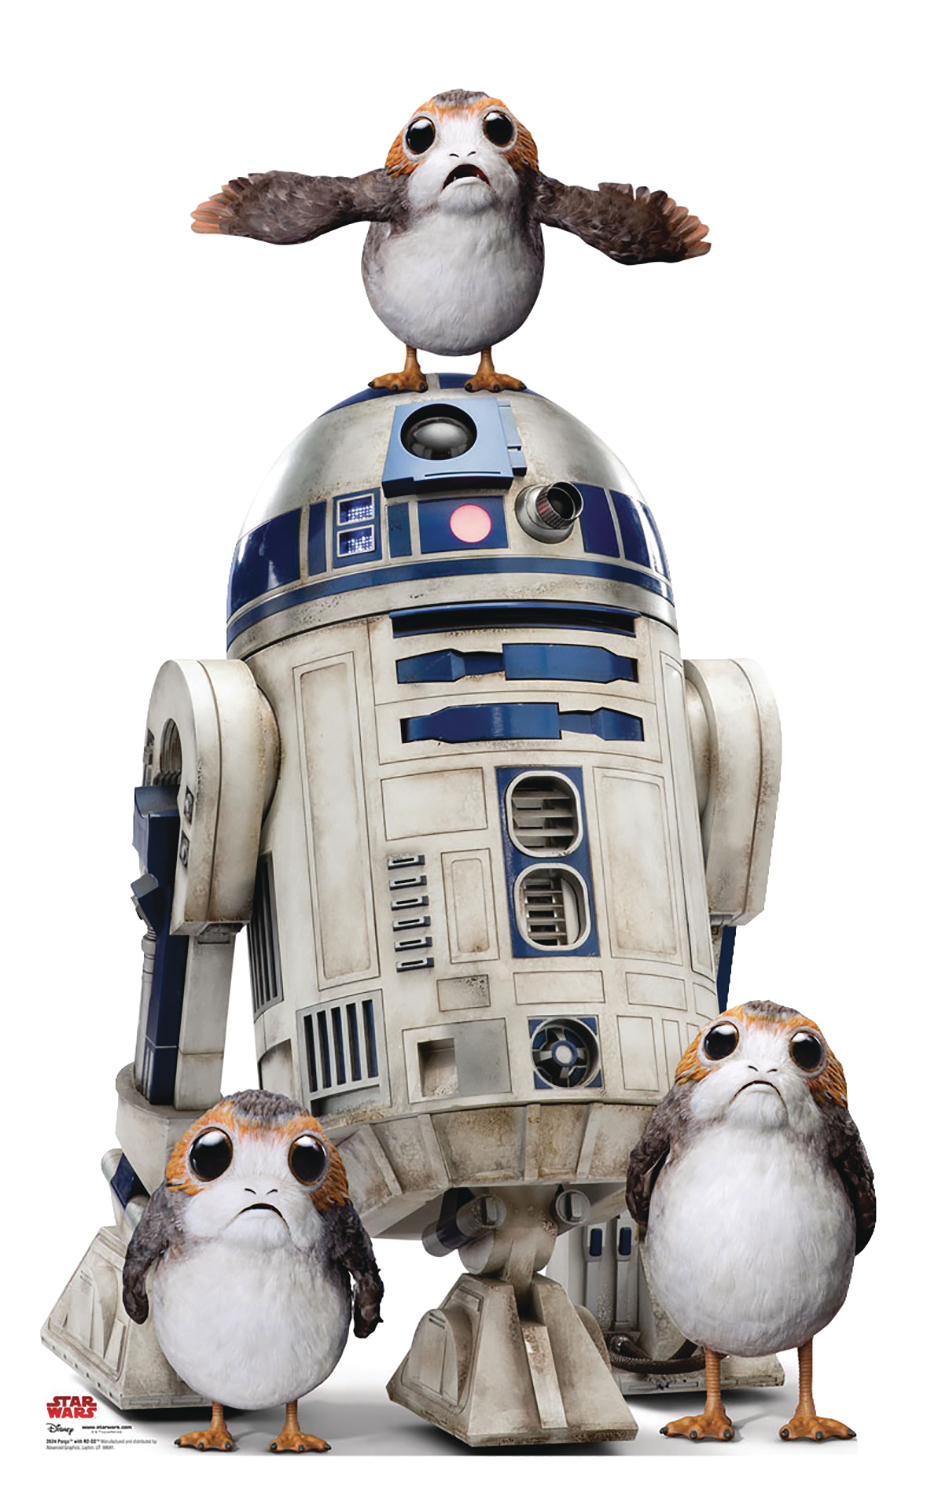 STAR WARS THE LAST JEDI R2-D2 W/PORGS LIFE-SIZE STAND UP